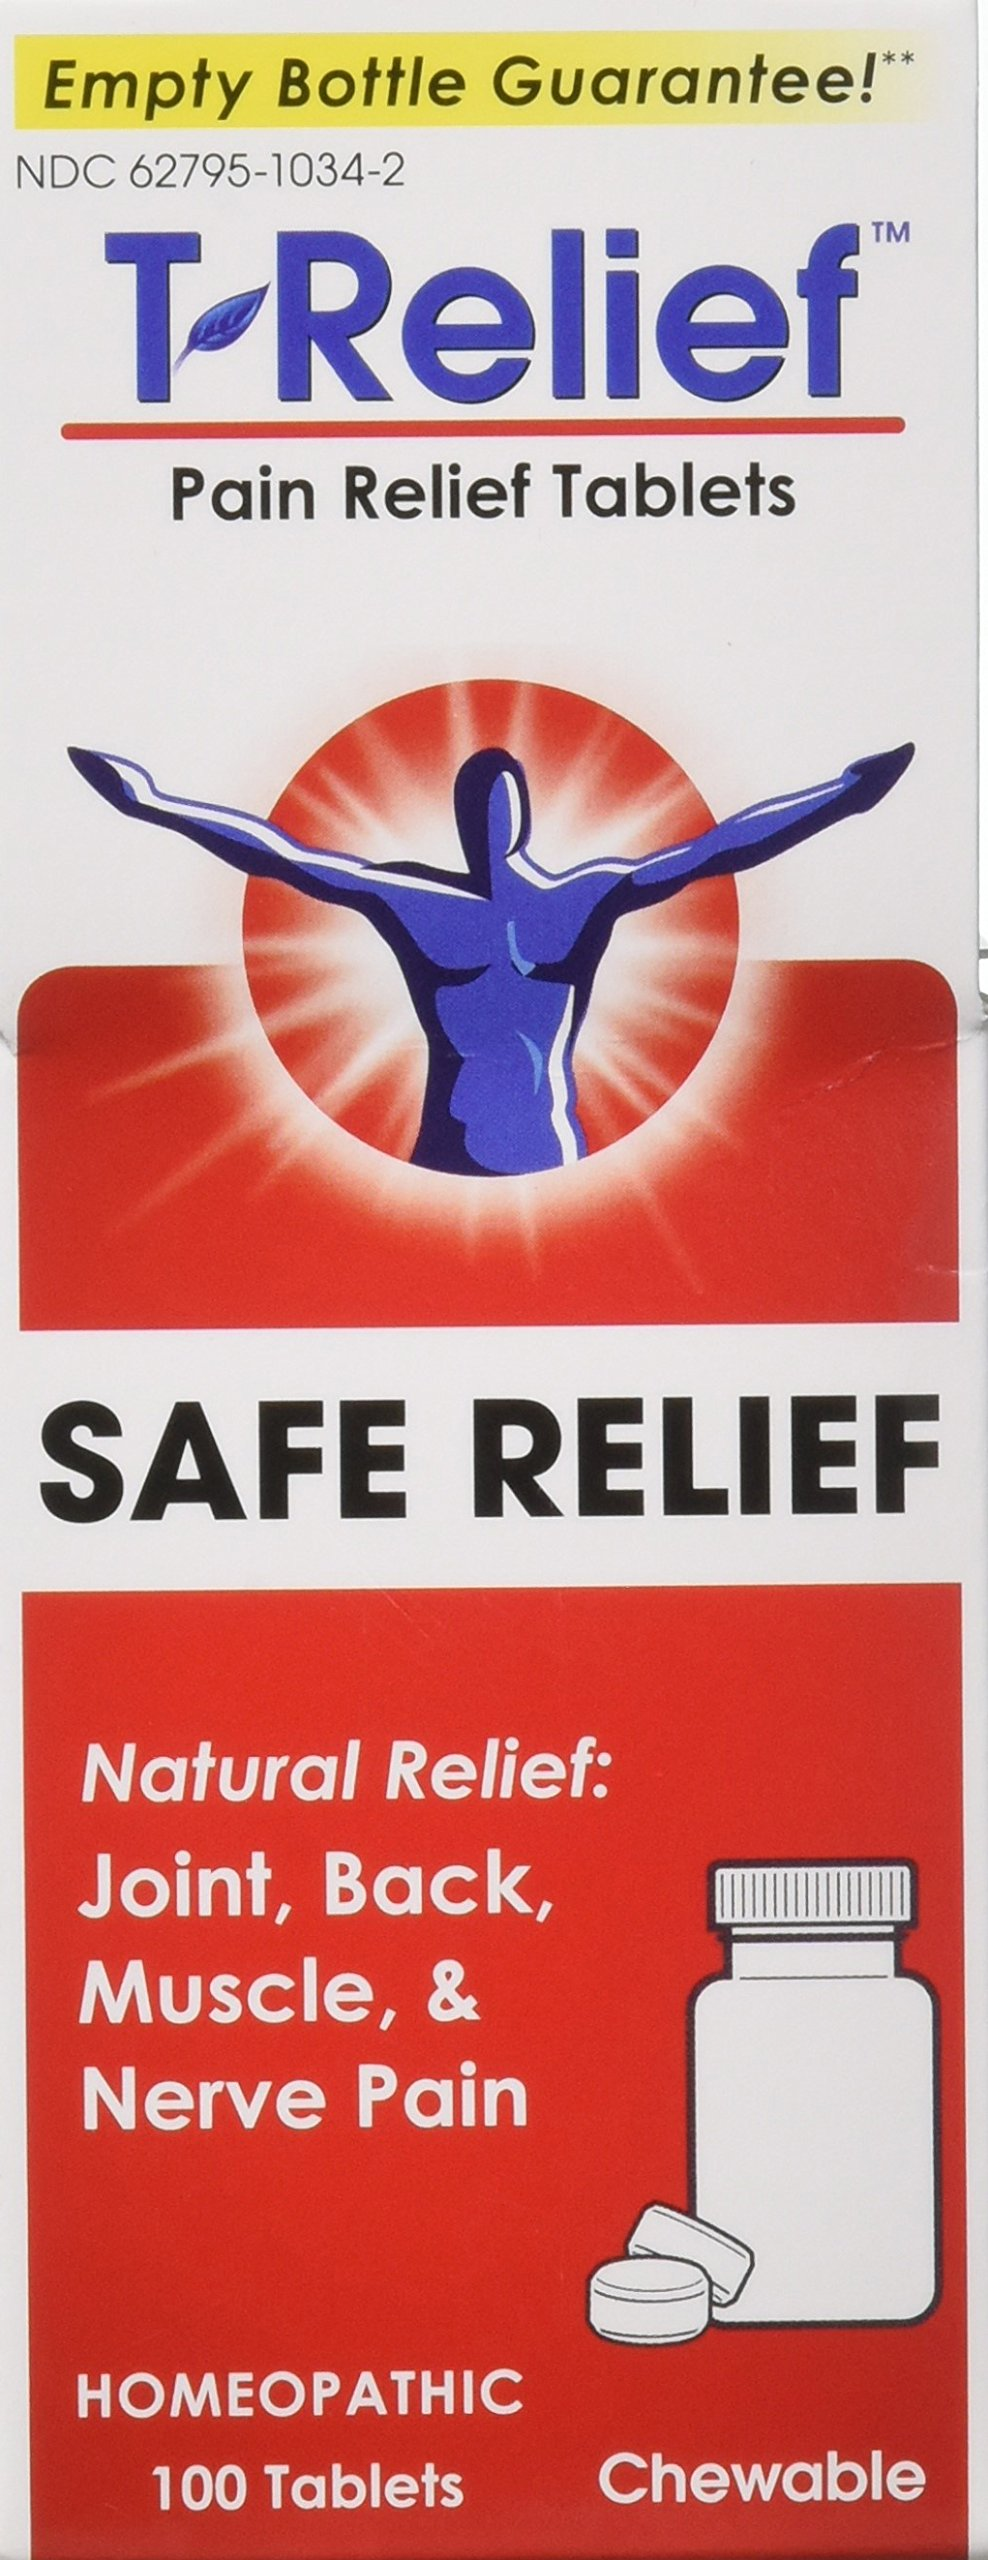 T-Relief Pain Relief 13 Natural Medicines Tablets 100 ea (Pack of 2) by T-Relief